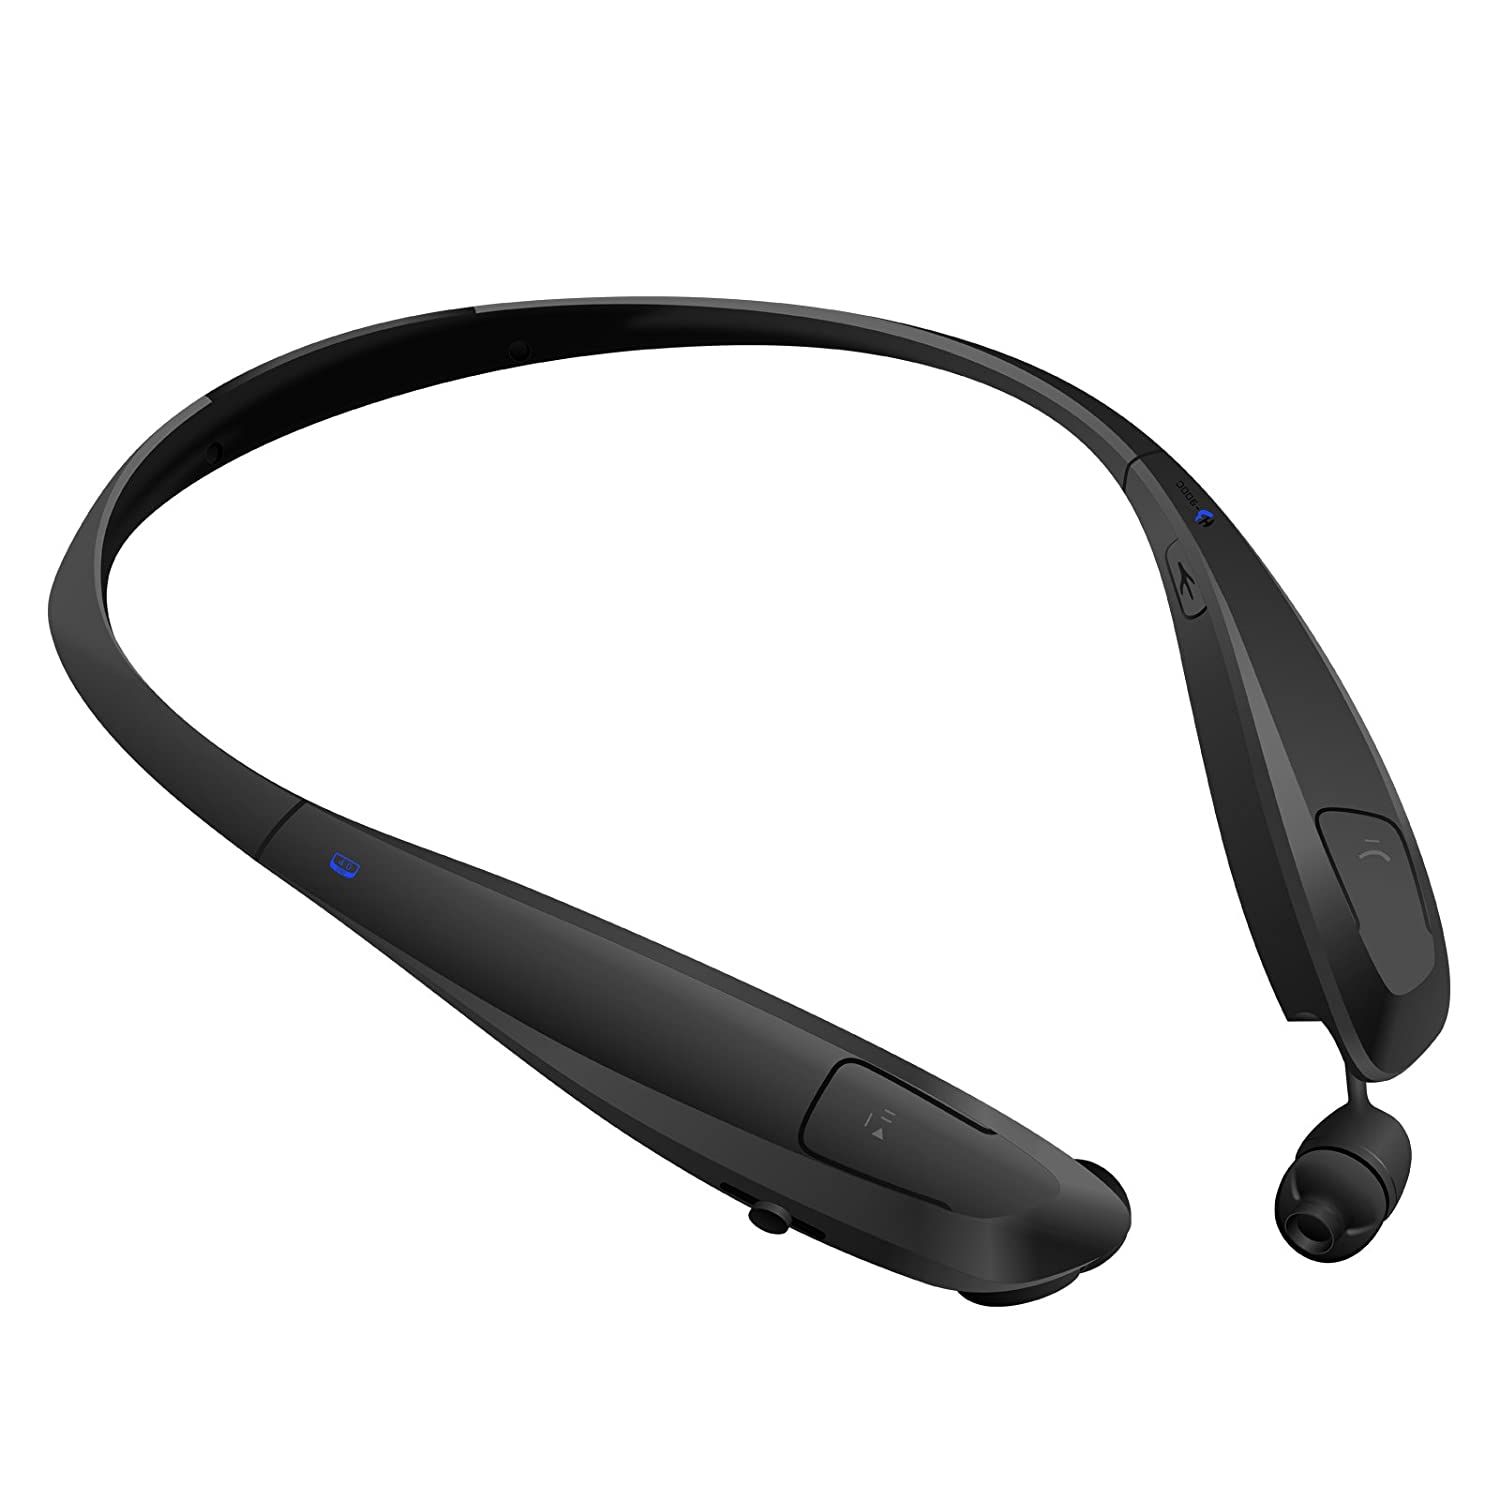 rymemo auto wire retraction bluetooth headphones hb 900c neckband earpiece bluetooth headset. Black Bedroom Furniture Sets. Home Design Ideas